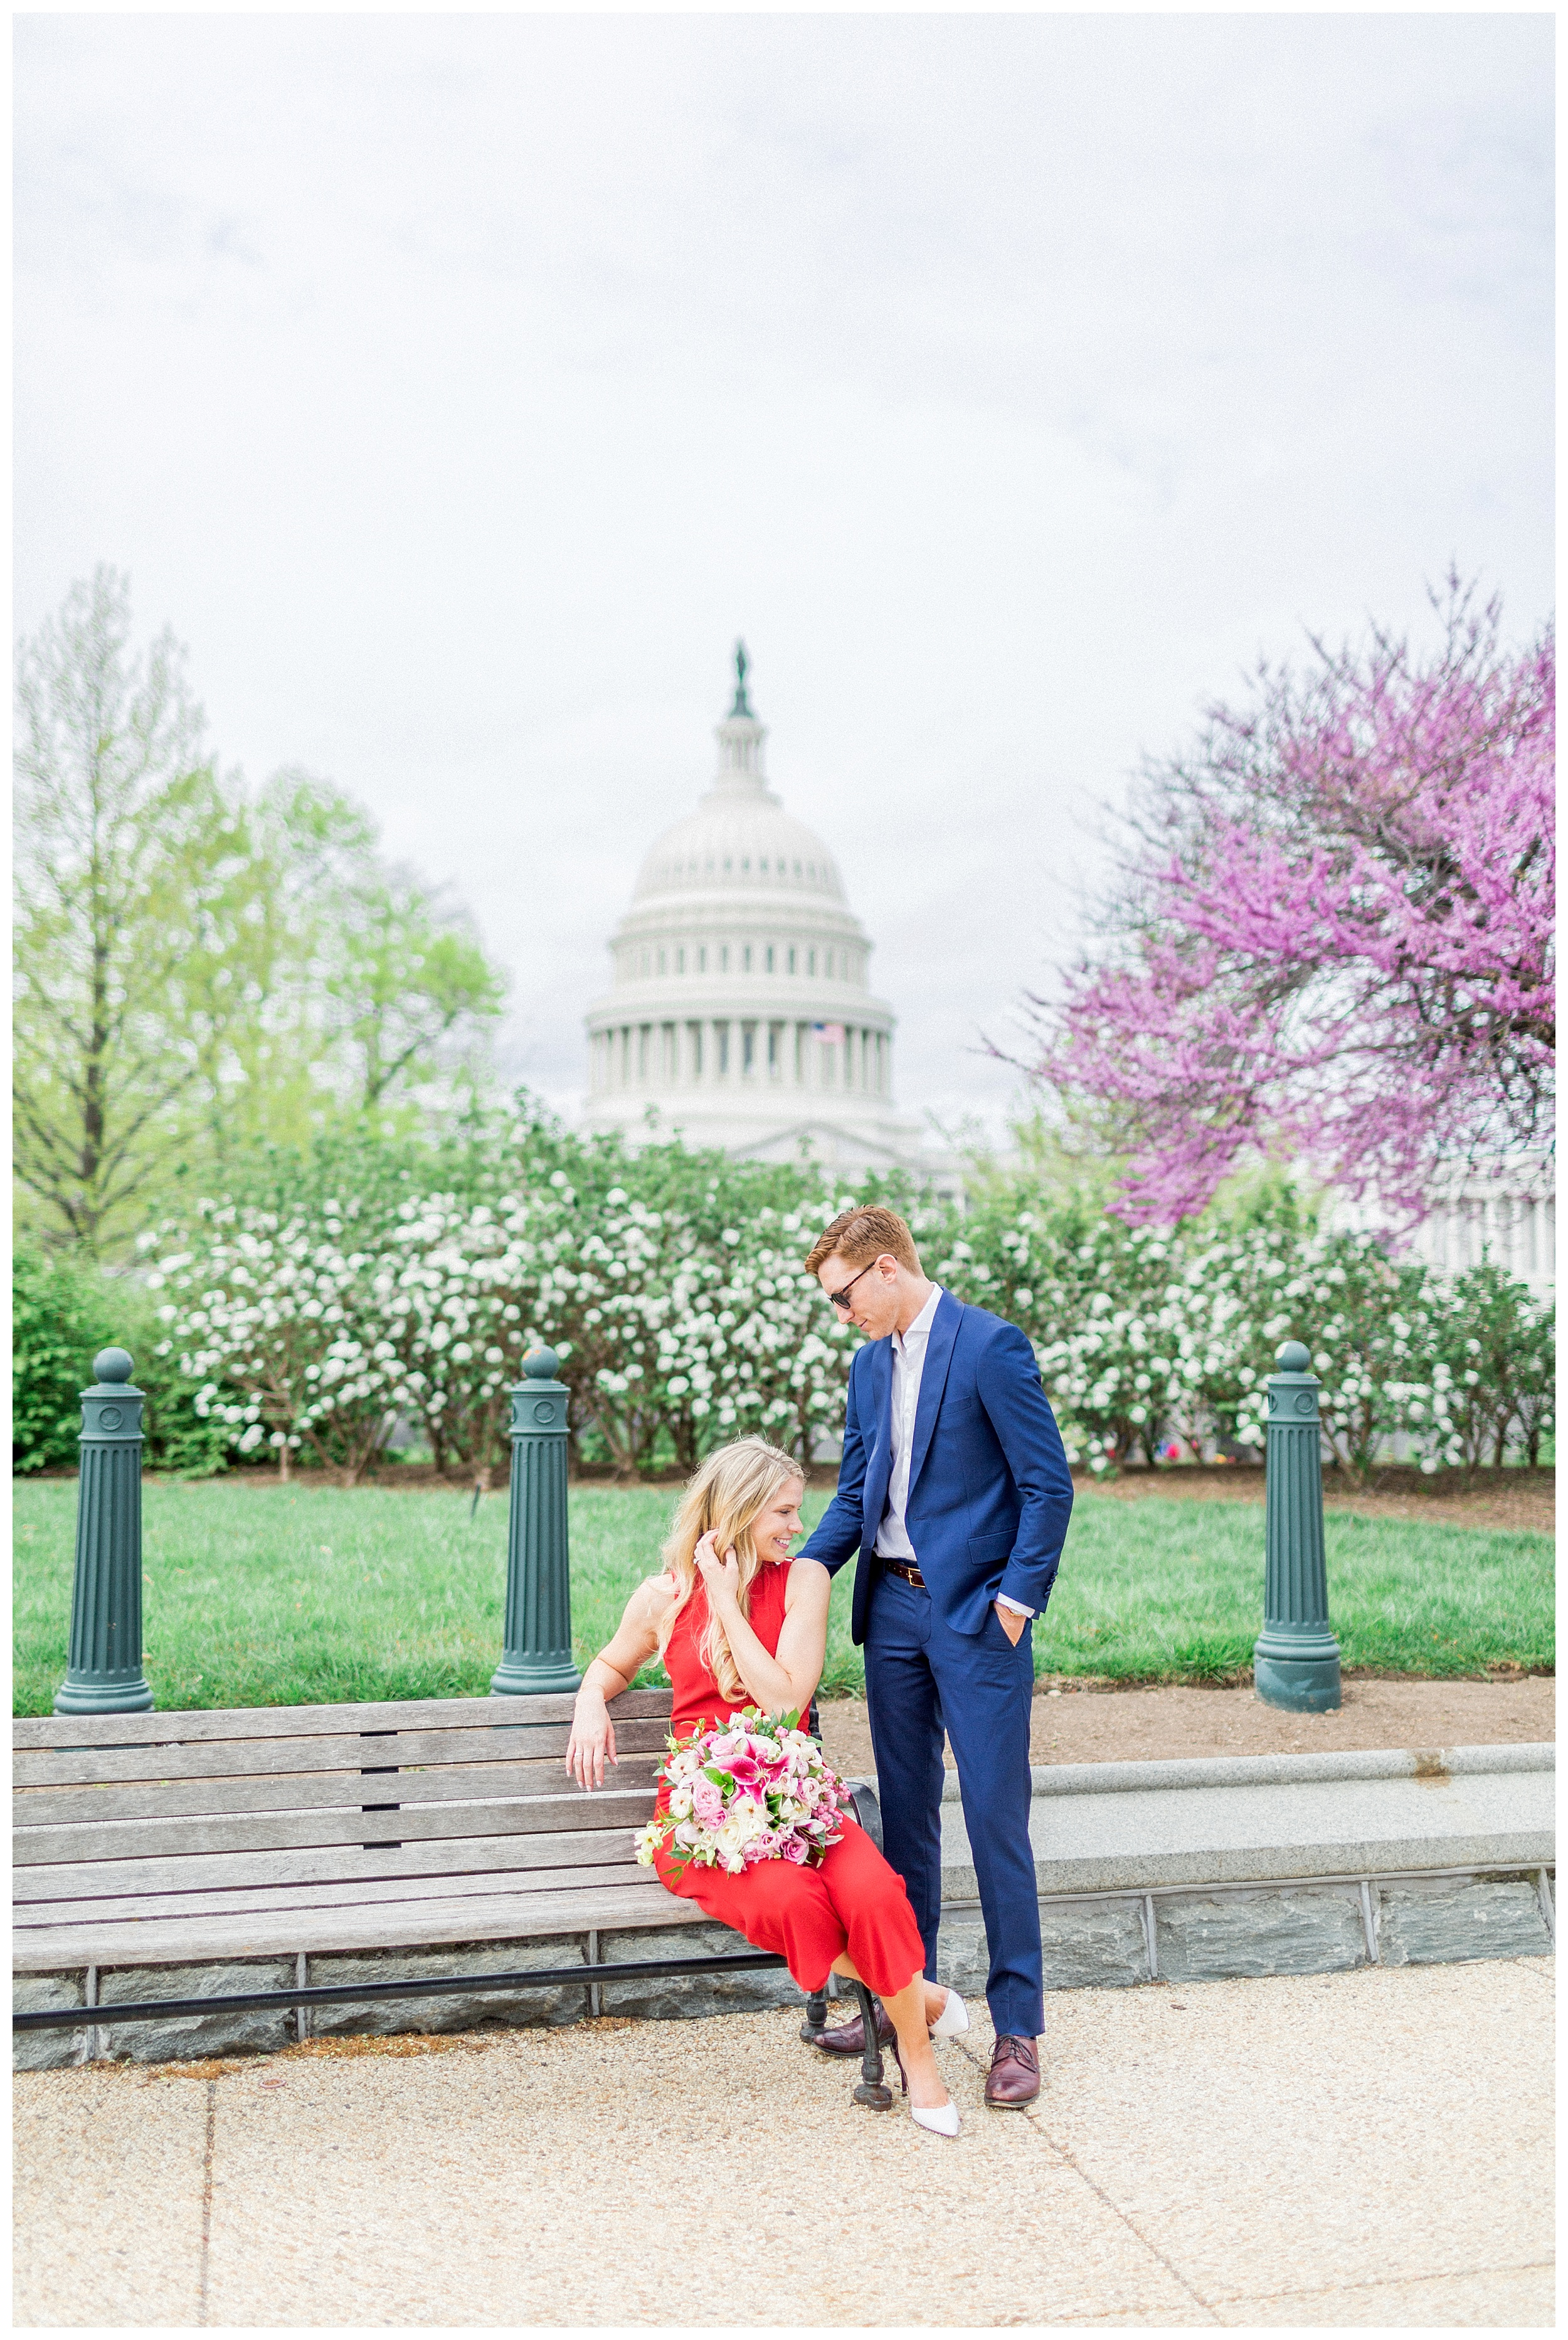 District of Columbia Elopement | Library of Congress Engagement Session Washington DC_0001.jpg